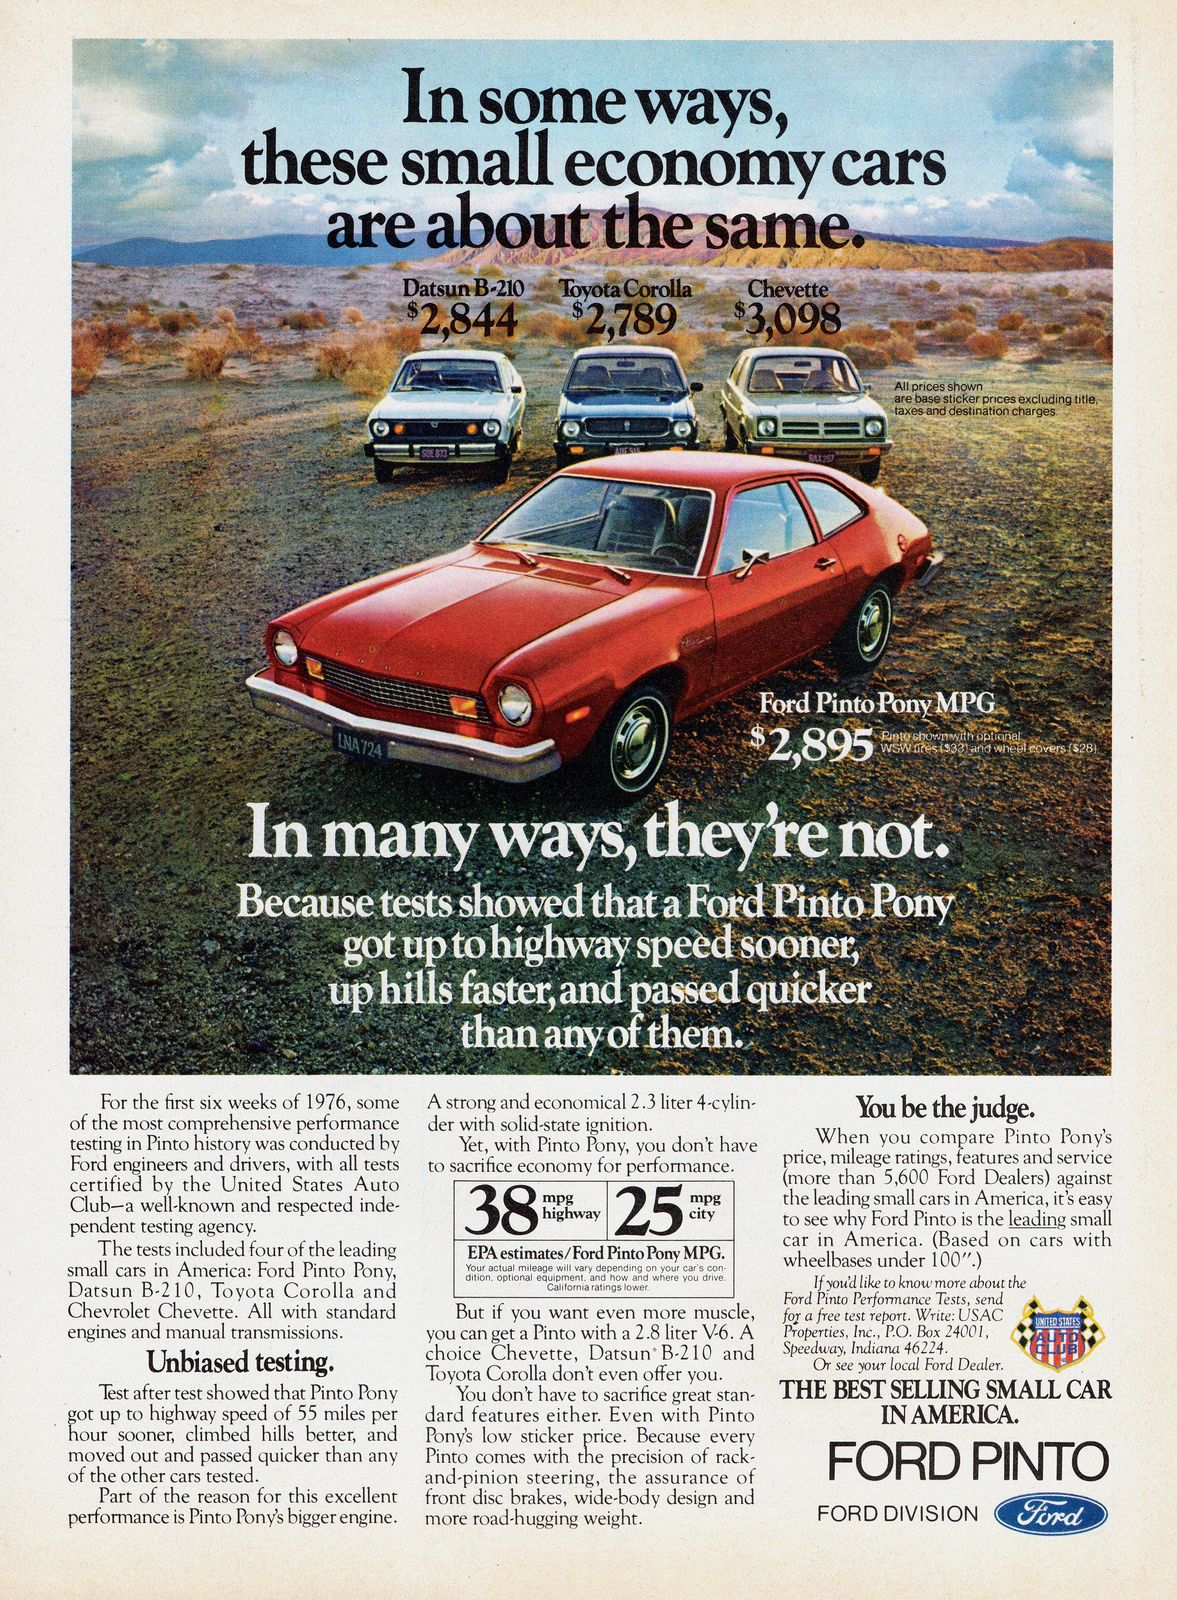 1976 Ford Pinto Pony MPG | Ford pinto, Ford and Car stuff